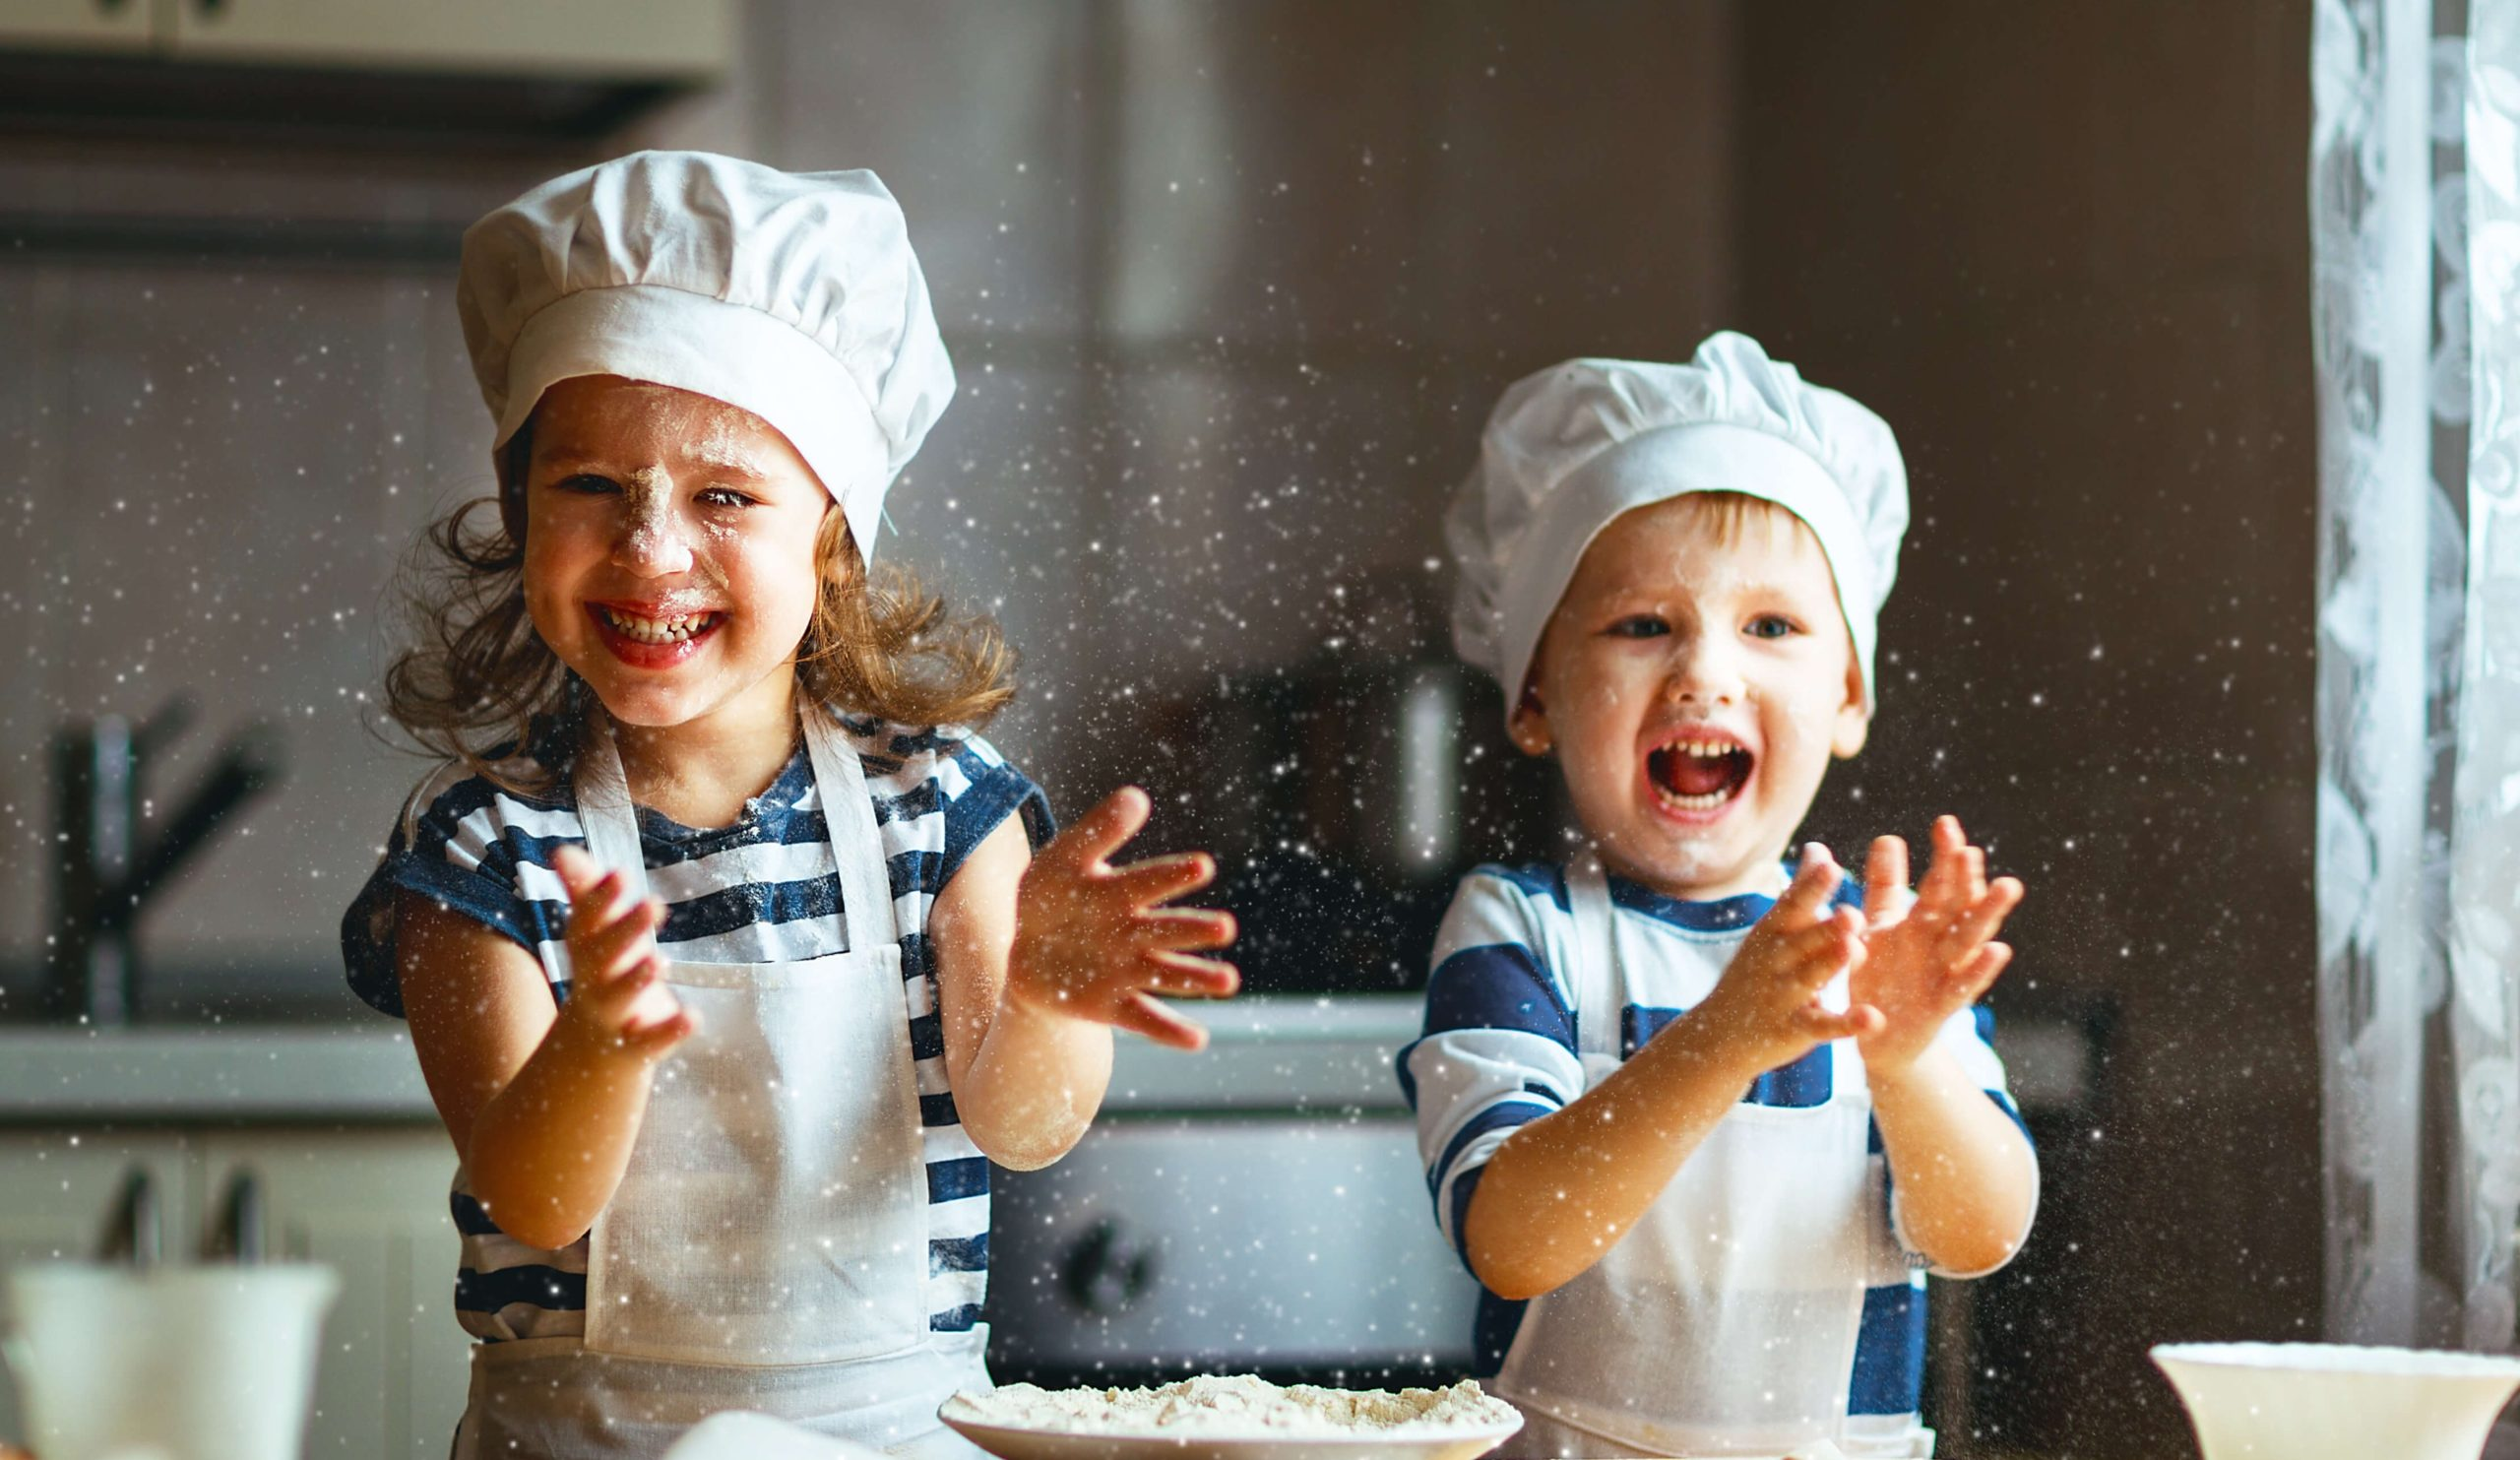 Two young kids playing with flour in the kitchen